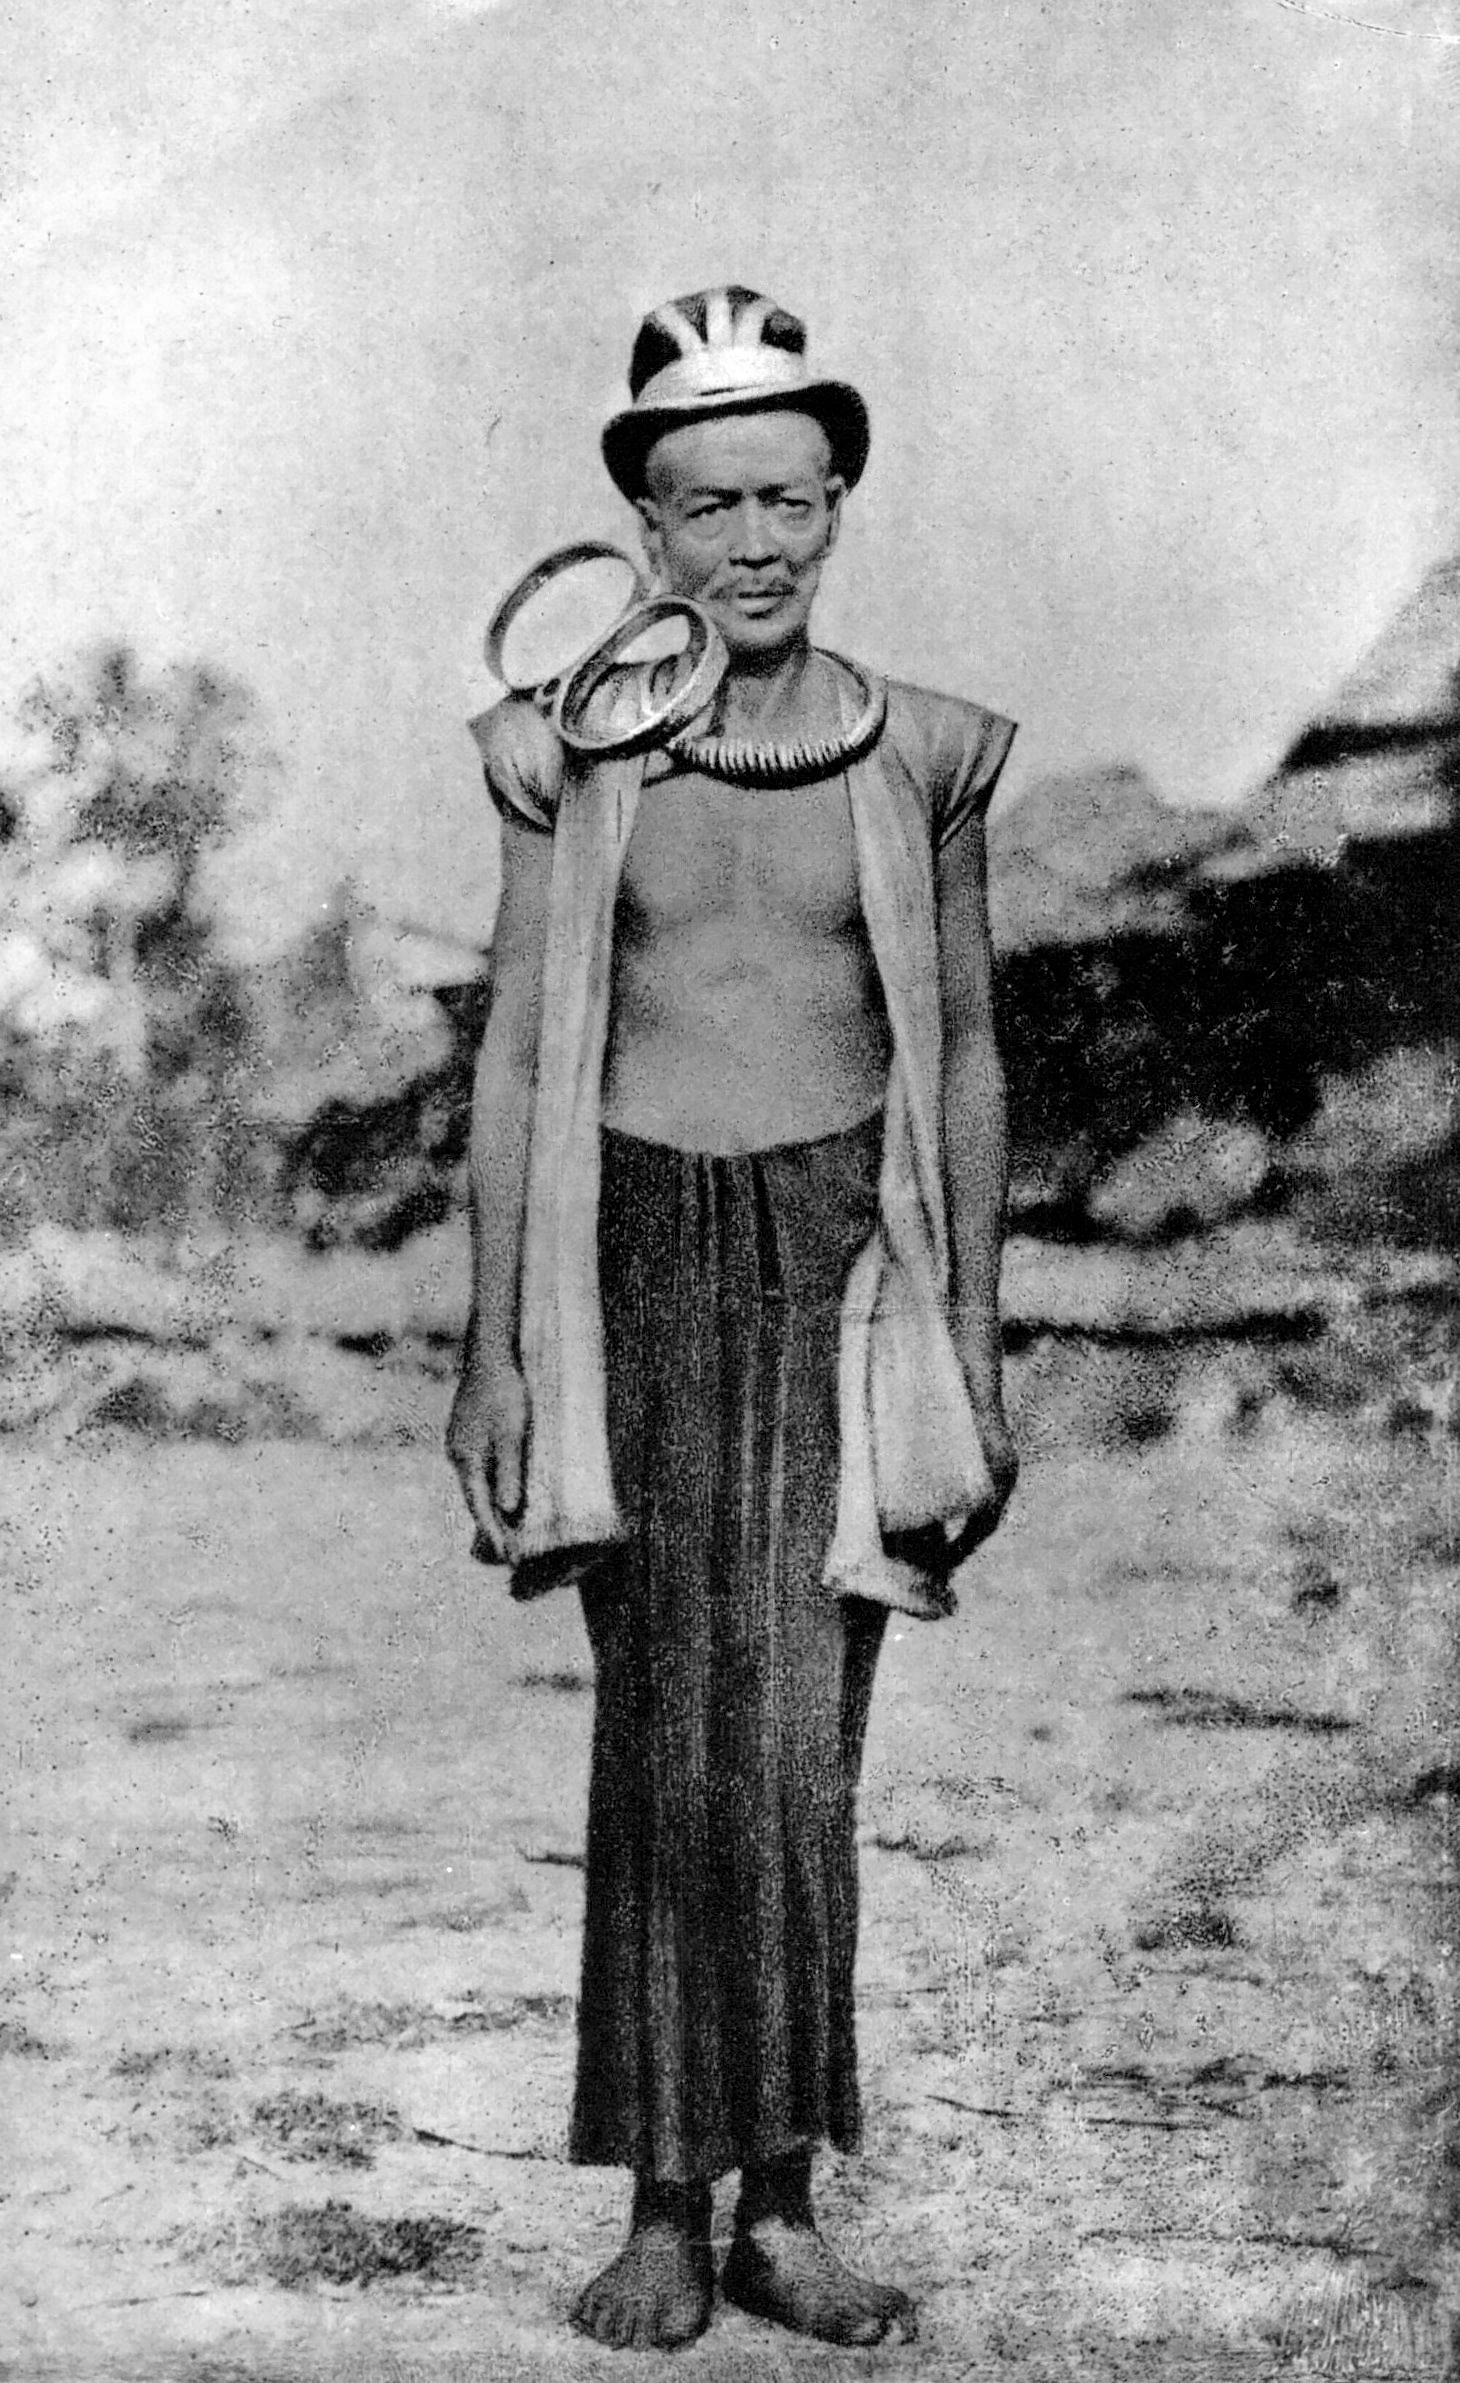 Nobleman from South Nias wearing a  nifatali  naklace and a  gaule  ear ornament. Despite its size, the ear ornament is relatively light in weight as it is fashioned o fvery thin goldsheet. (Photograph Modigliani 1890: fig.4)